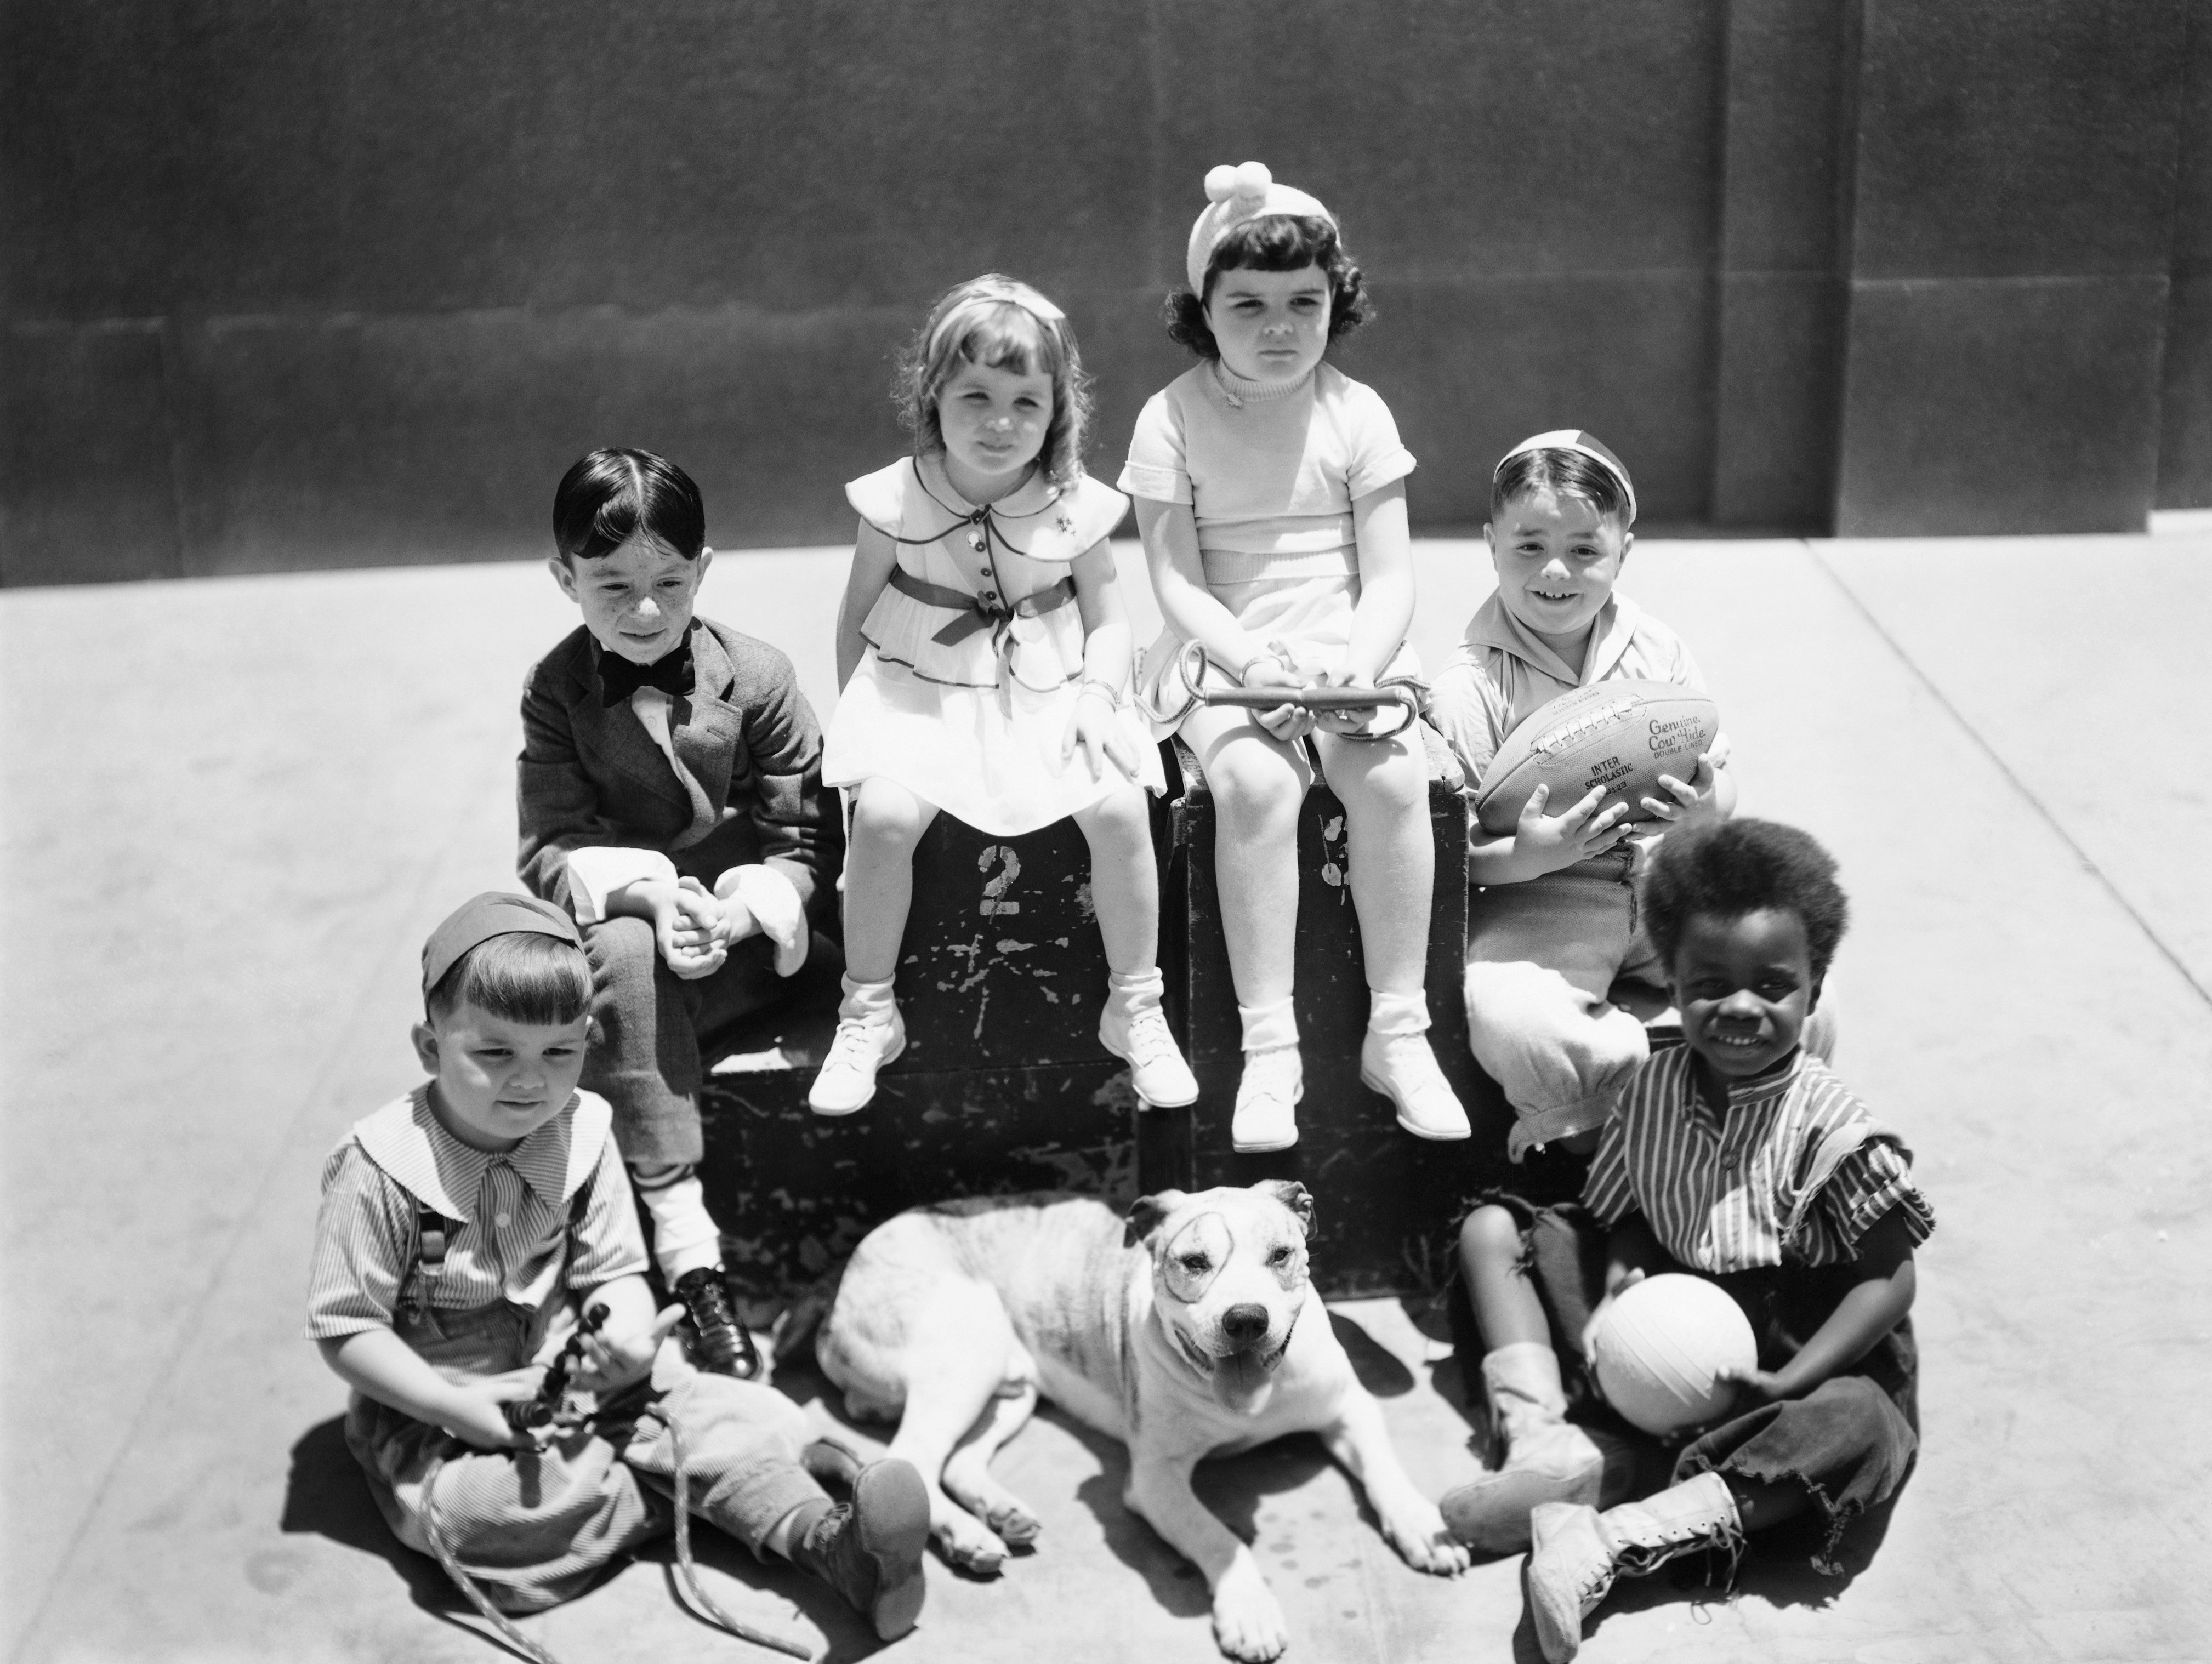 """The cast of """"Our Gang/Little Rascals"""" TV show, Hal Roach, MGM production. Spanky McFarland holding the football. Undated photograph. 